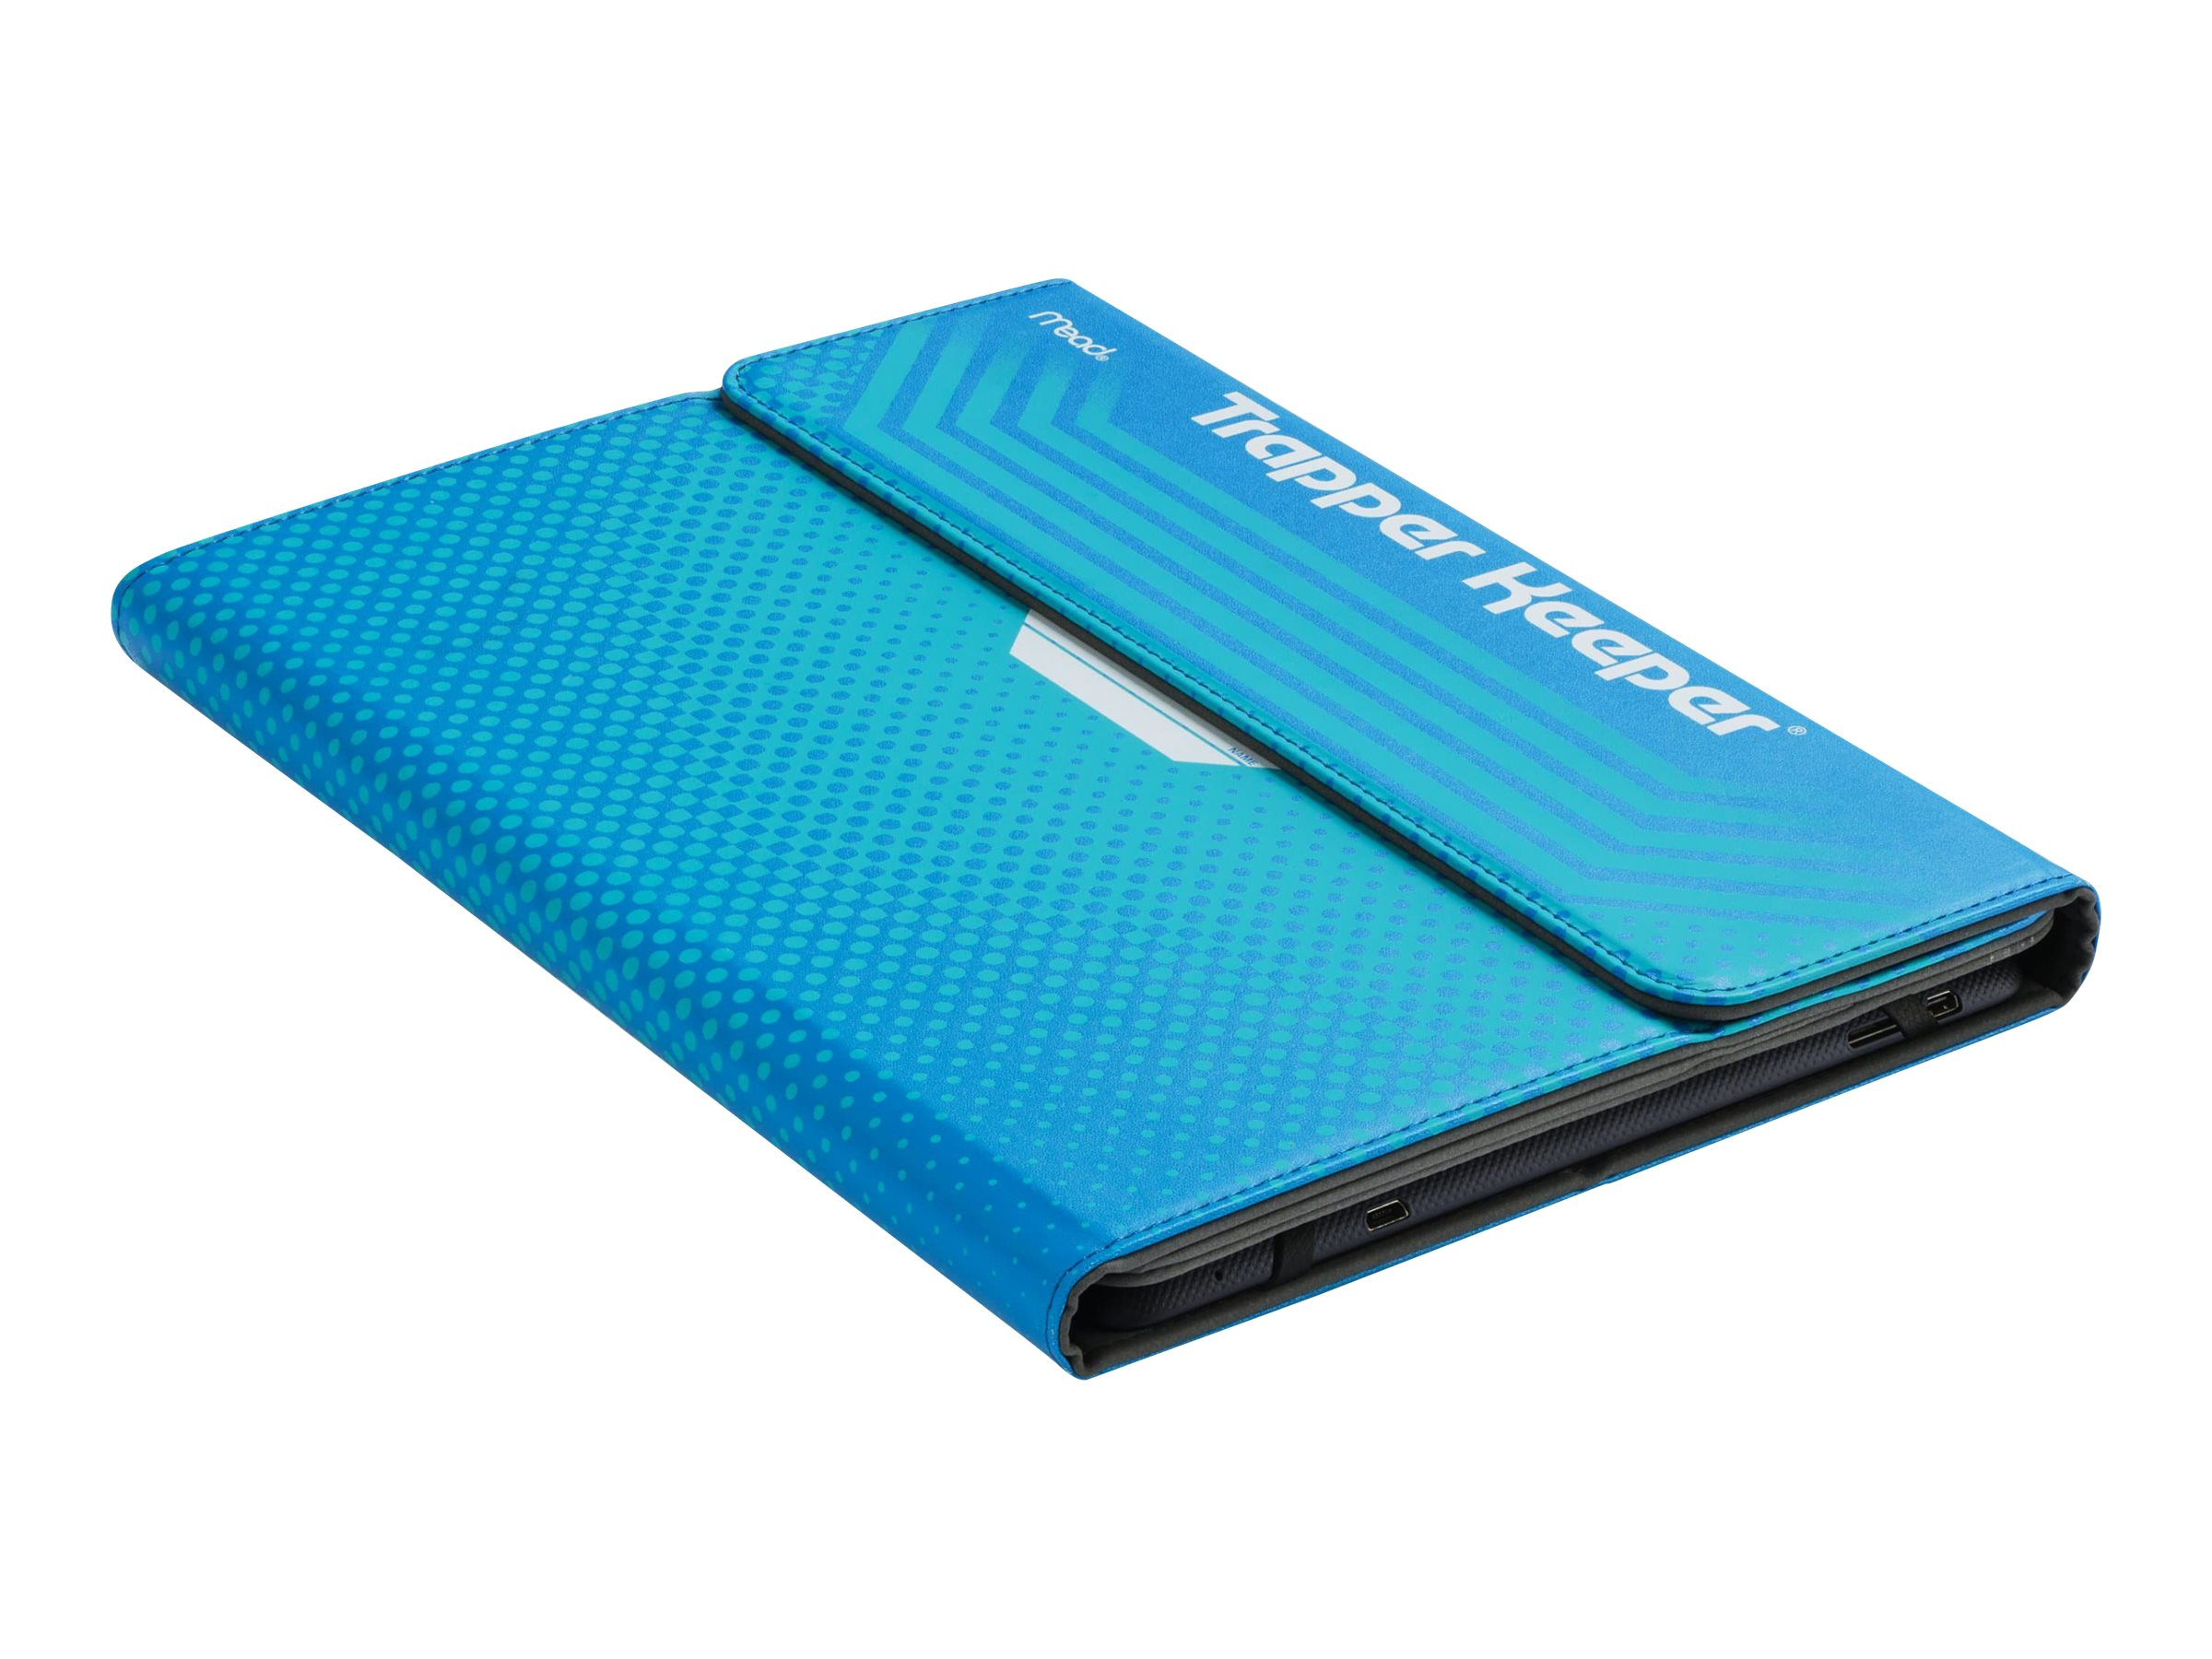 Kensington Trapper Keeper Universal Case for 10 Tablets, Blue